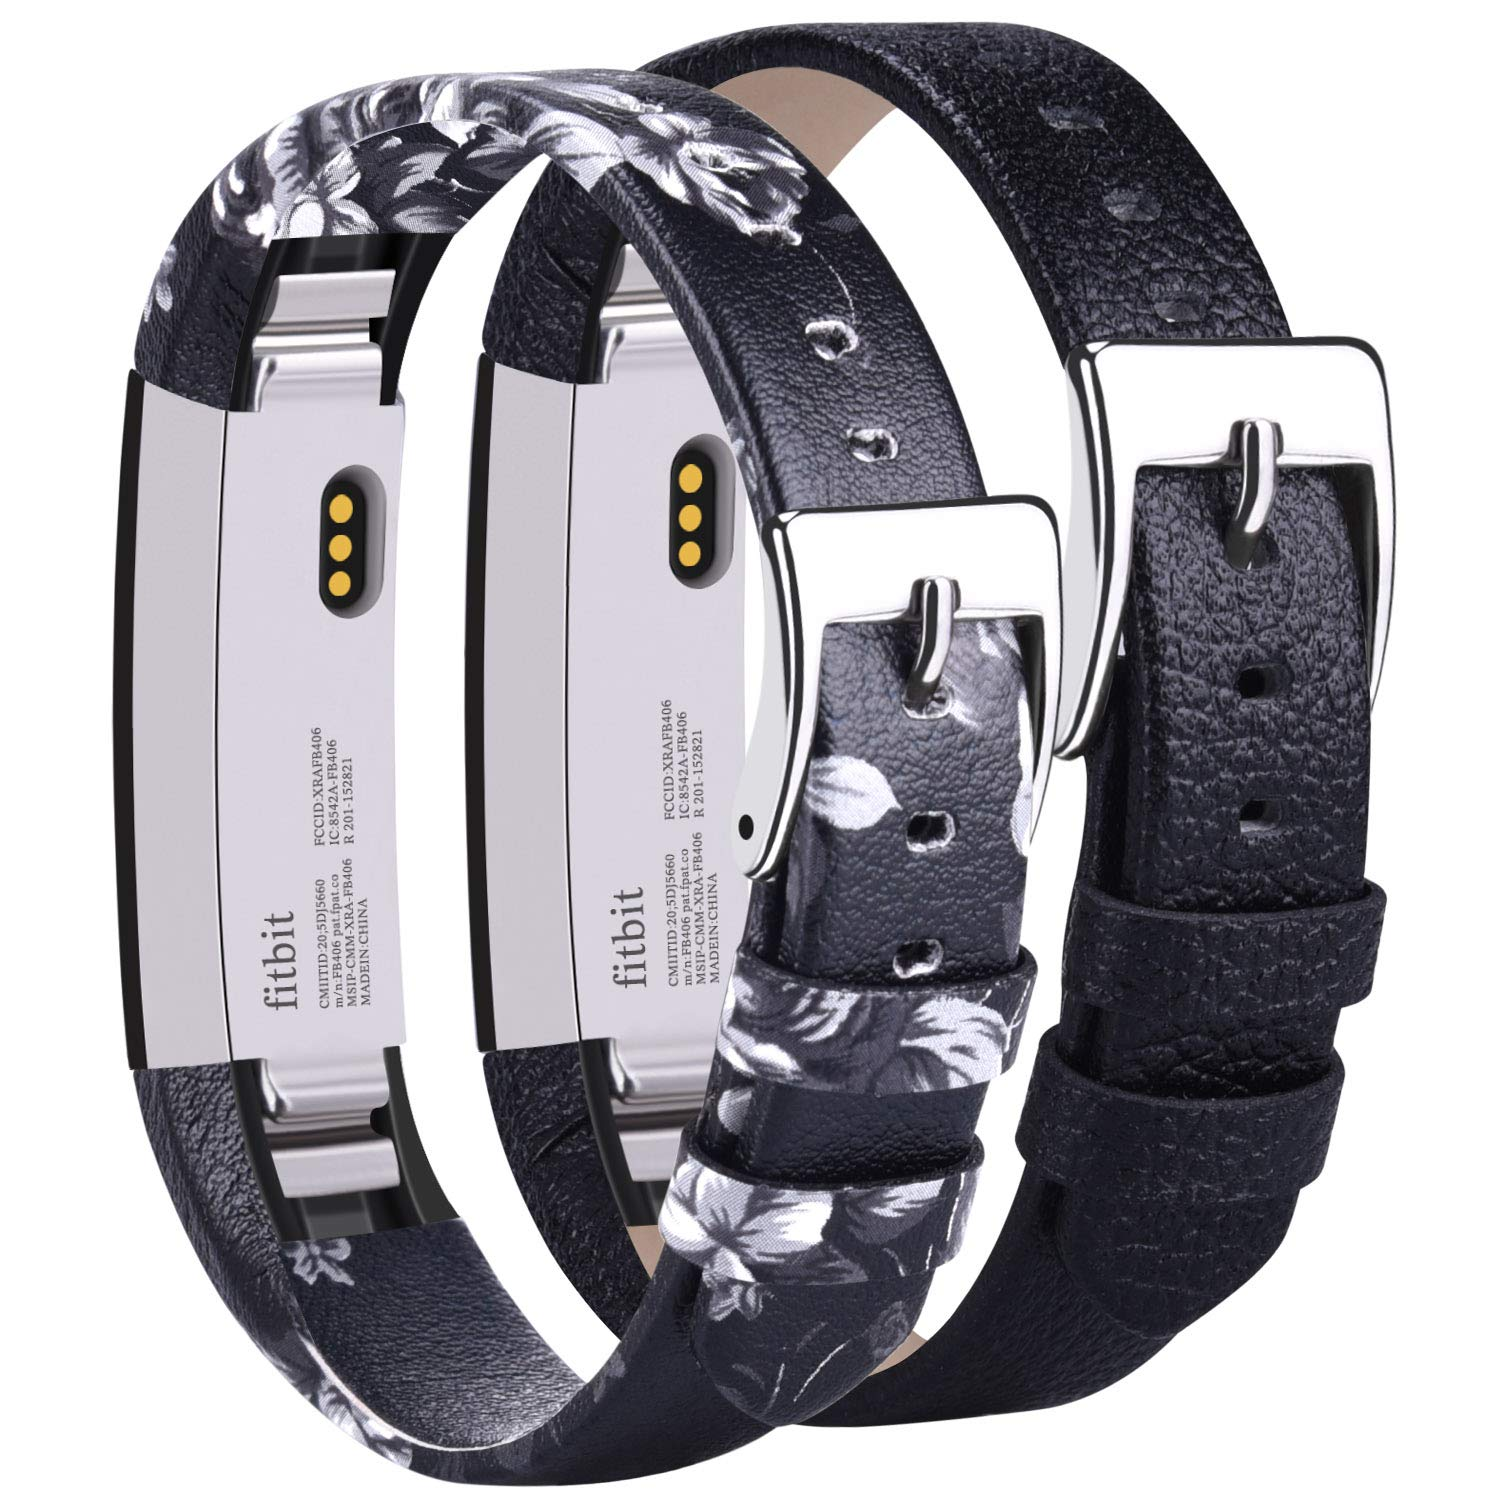 Vancle Leather Bands Compatible with Fitbit Alta/Fitbit Alta HR for Women Men, Adjustable Replacement Accessories Strap with Buckle for Fitbit Alta and Fitbit Alta HR (#.Floral Gray+Black)